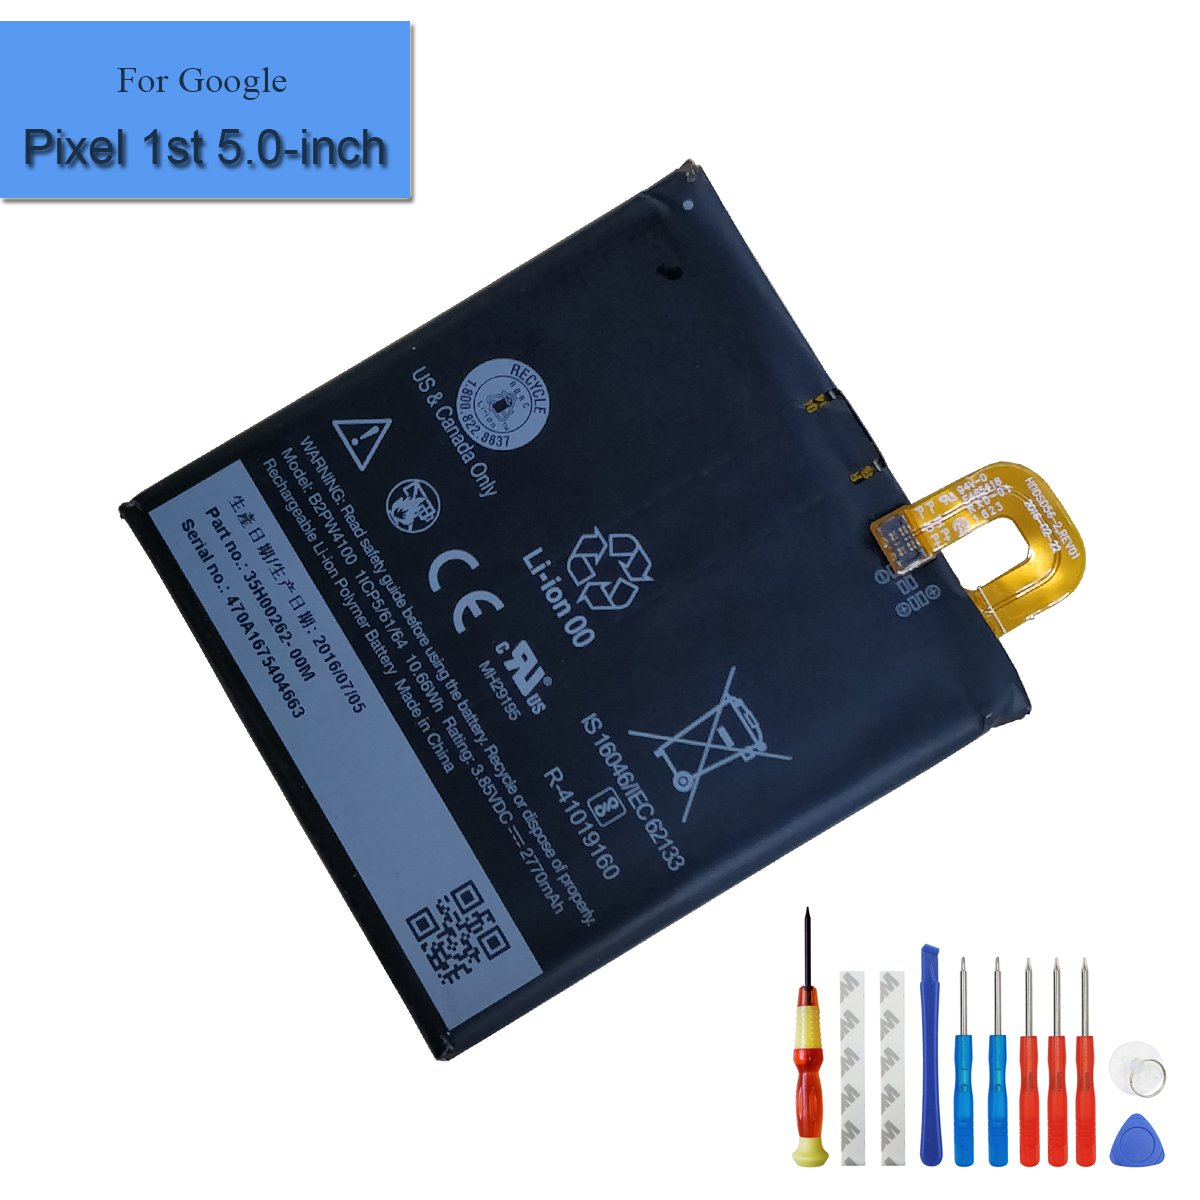 For Google Pixel 1st 5.0-Inch New Replacement Battery 2770mAh 3.85V Built-in Battery B2PW4100 35H00262-00M + Tools